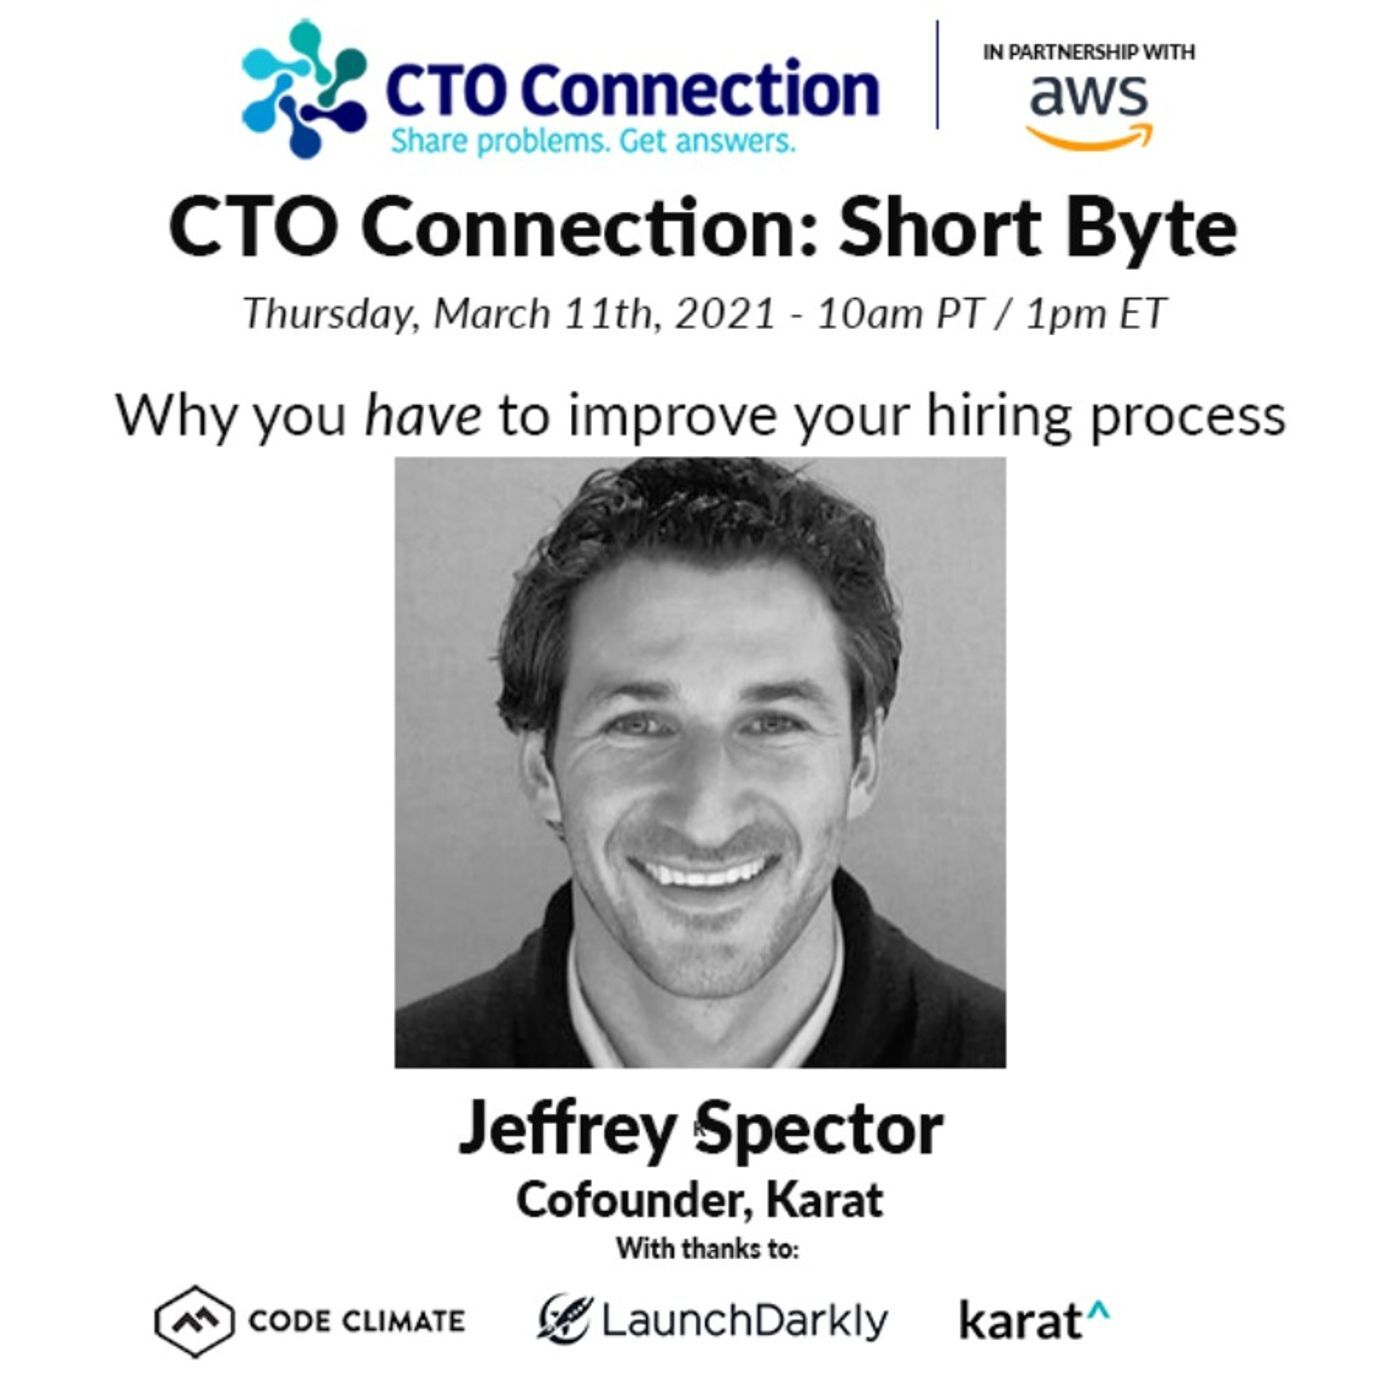 Short Byte: Jeffrey Spector - Why you have to improve your hiring process